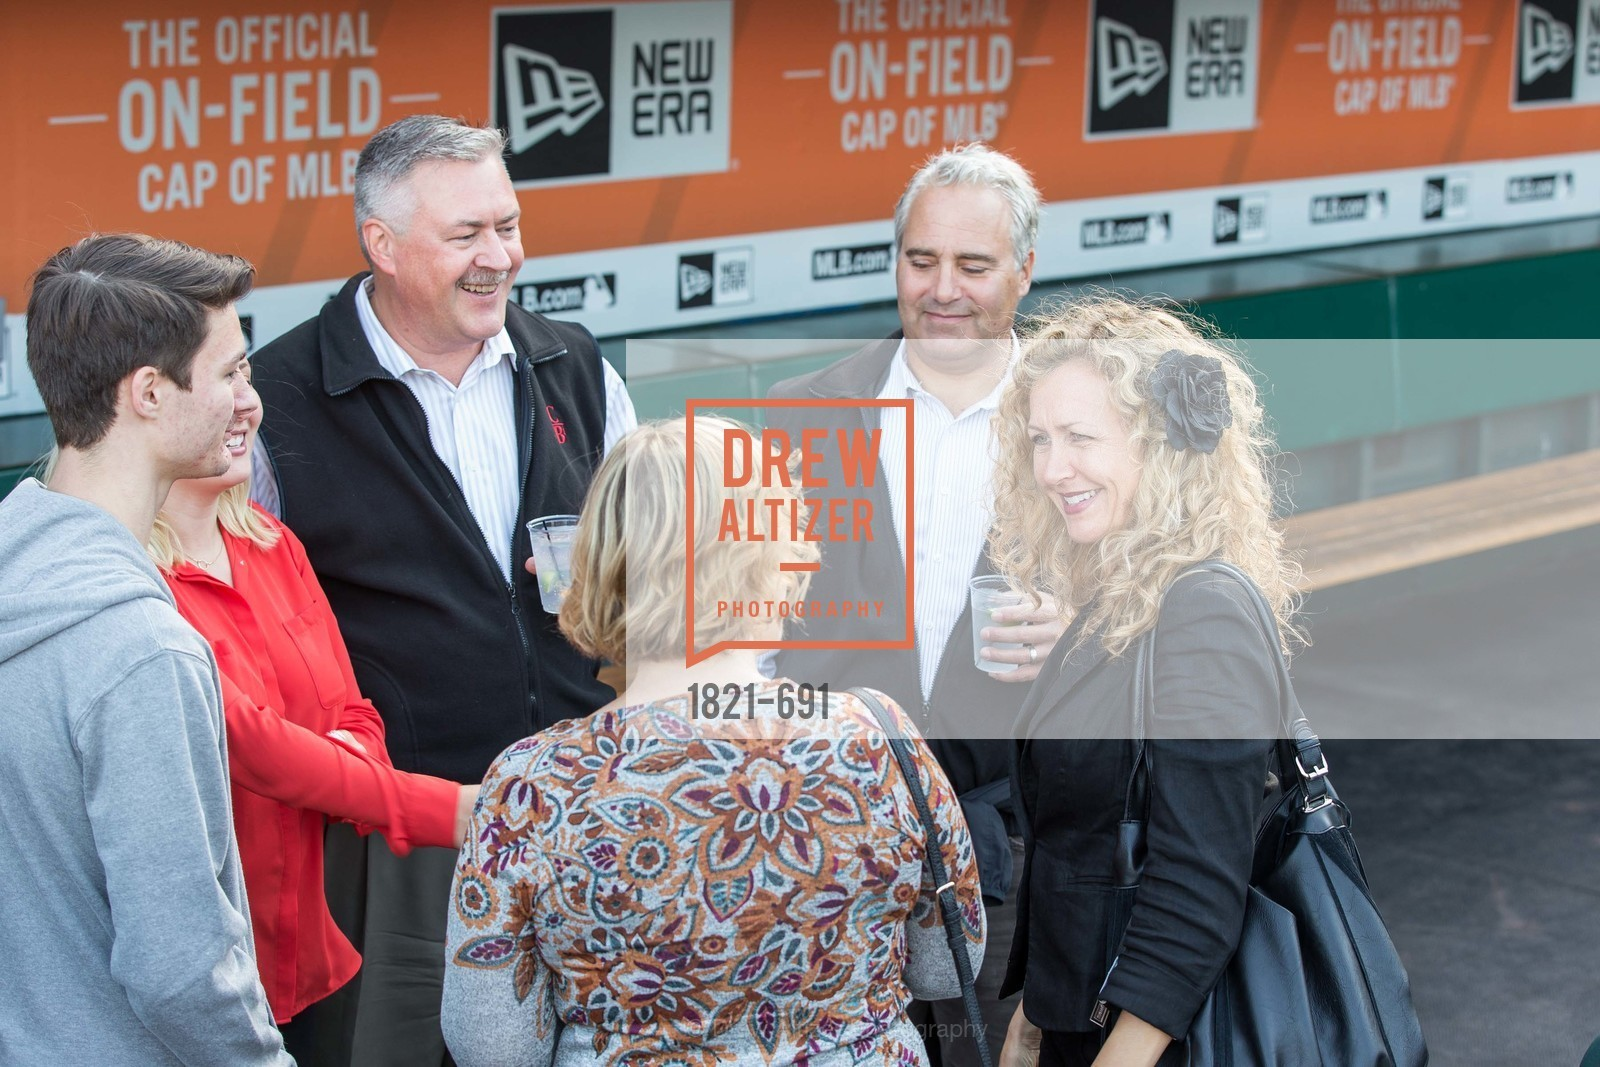 Scott Hagberg, Dan Amigone, Carla Helmbrecht, ST. FRANCIS FOUNDATION'S Knock It Out of the Park, US, June 4th, 2015,Drew Altizer, Drew Altizer Photography, full-service agency, private events, San Francisco photographer, photographer california